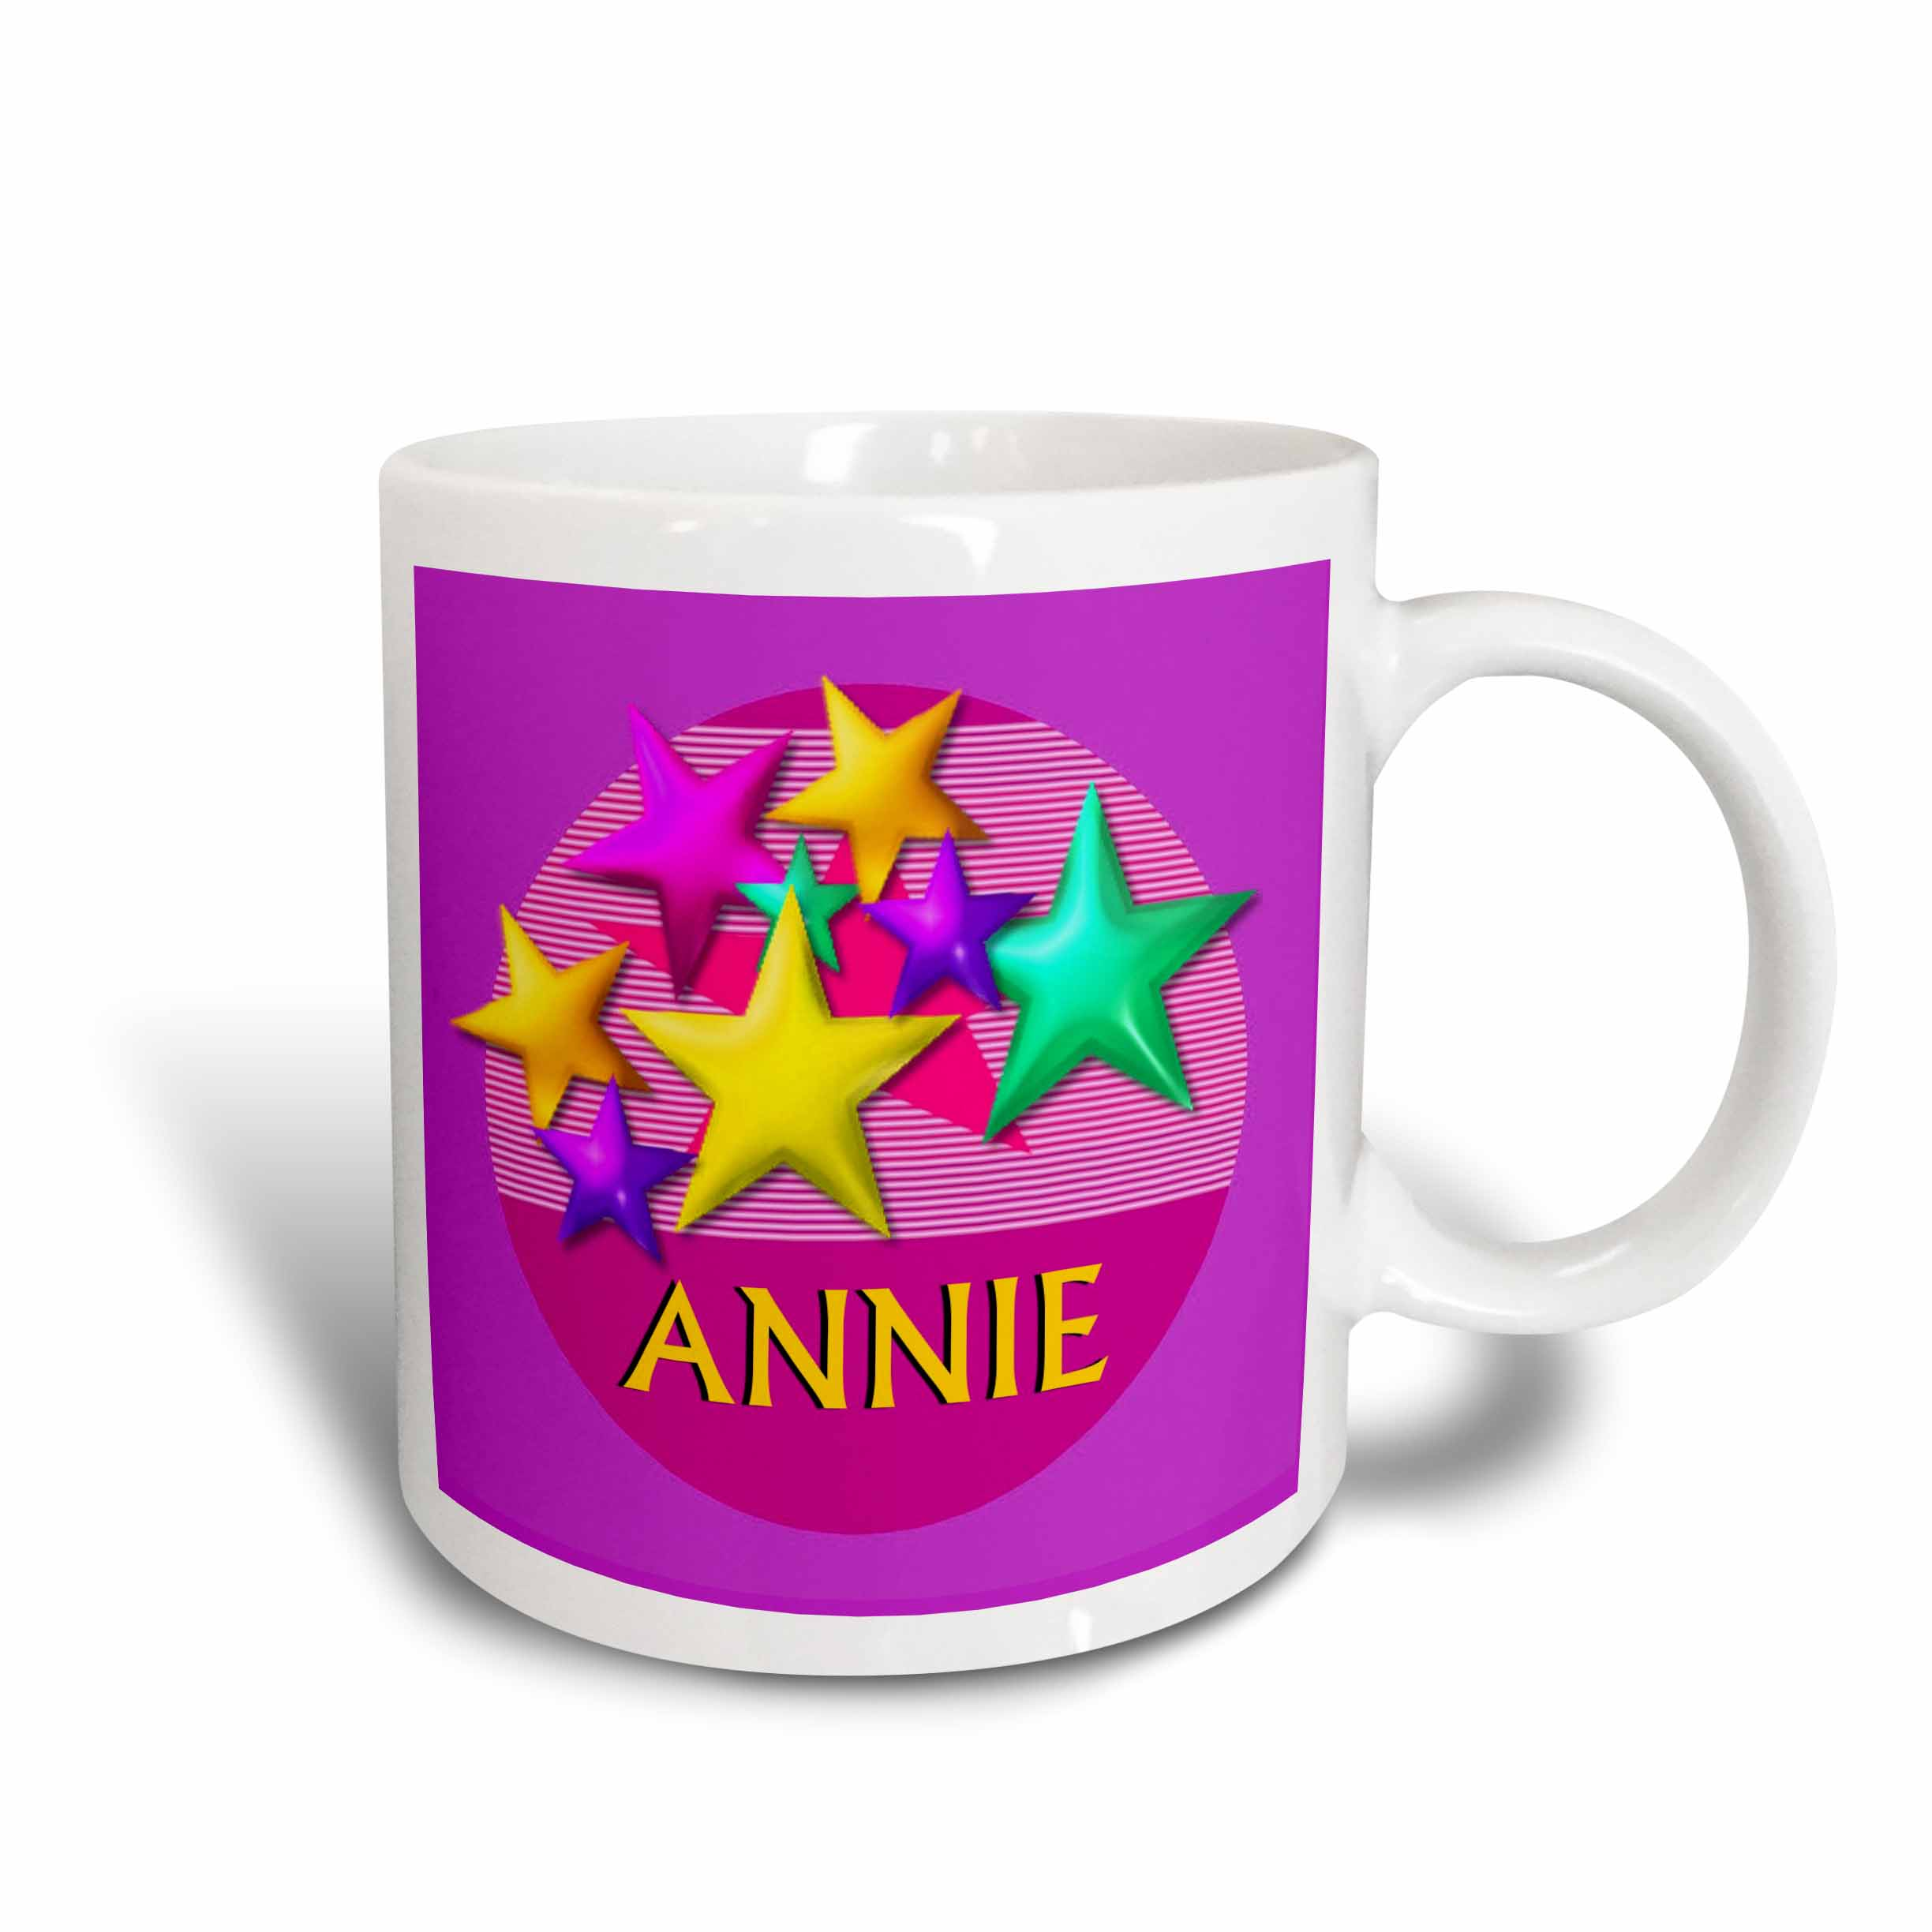 3dRose Vibrant colored stars on a pink background with the name ANNIE, Ceramic Mug, 11-ounce